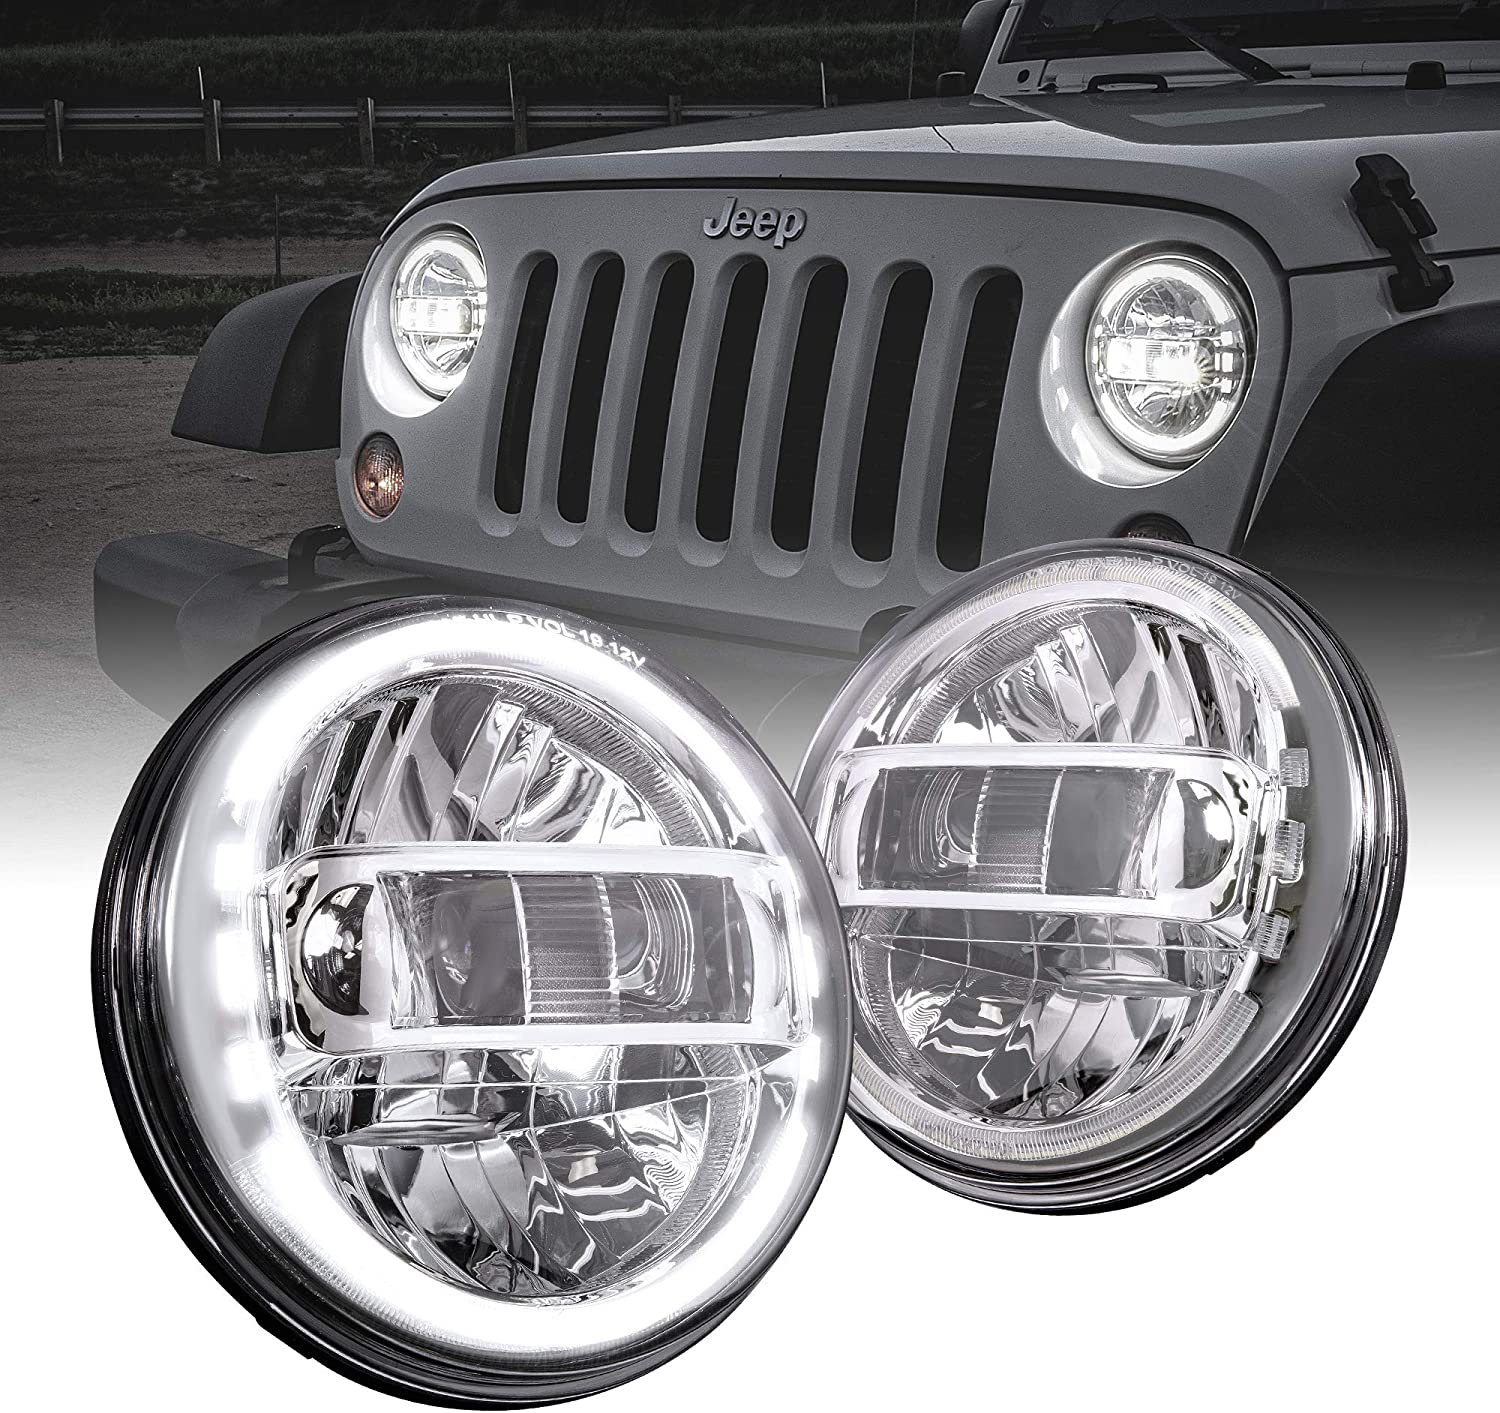 Built-In CAN Bus Chrome-Finish H4 Plug n Play 7 Round LED Headlights for Jeep Wrangler JK TJ LC CJ Hummer H1 H2 DOT Approved Accessories for Jeep Wrangler 1987-2018 Head Lights HALO DRL